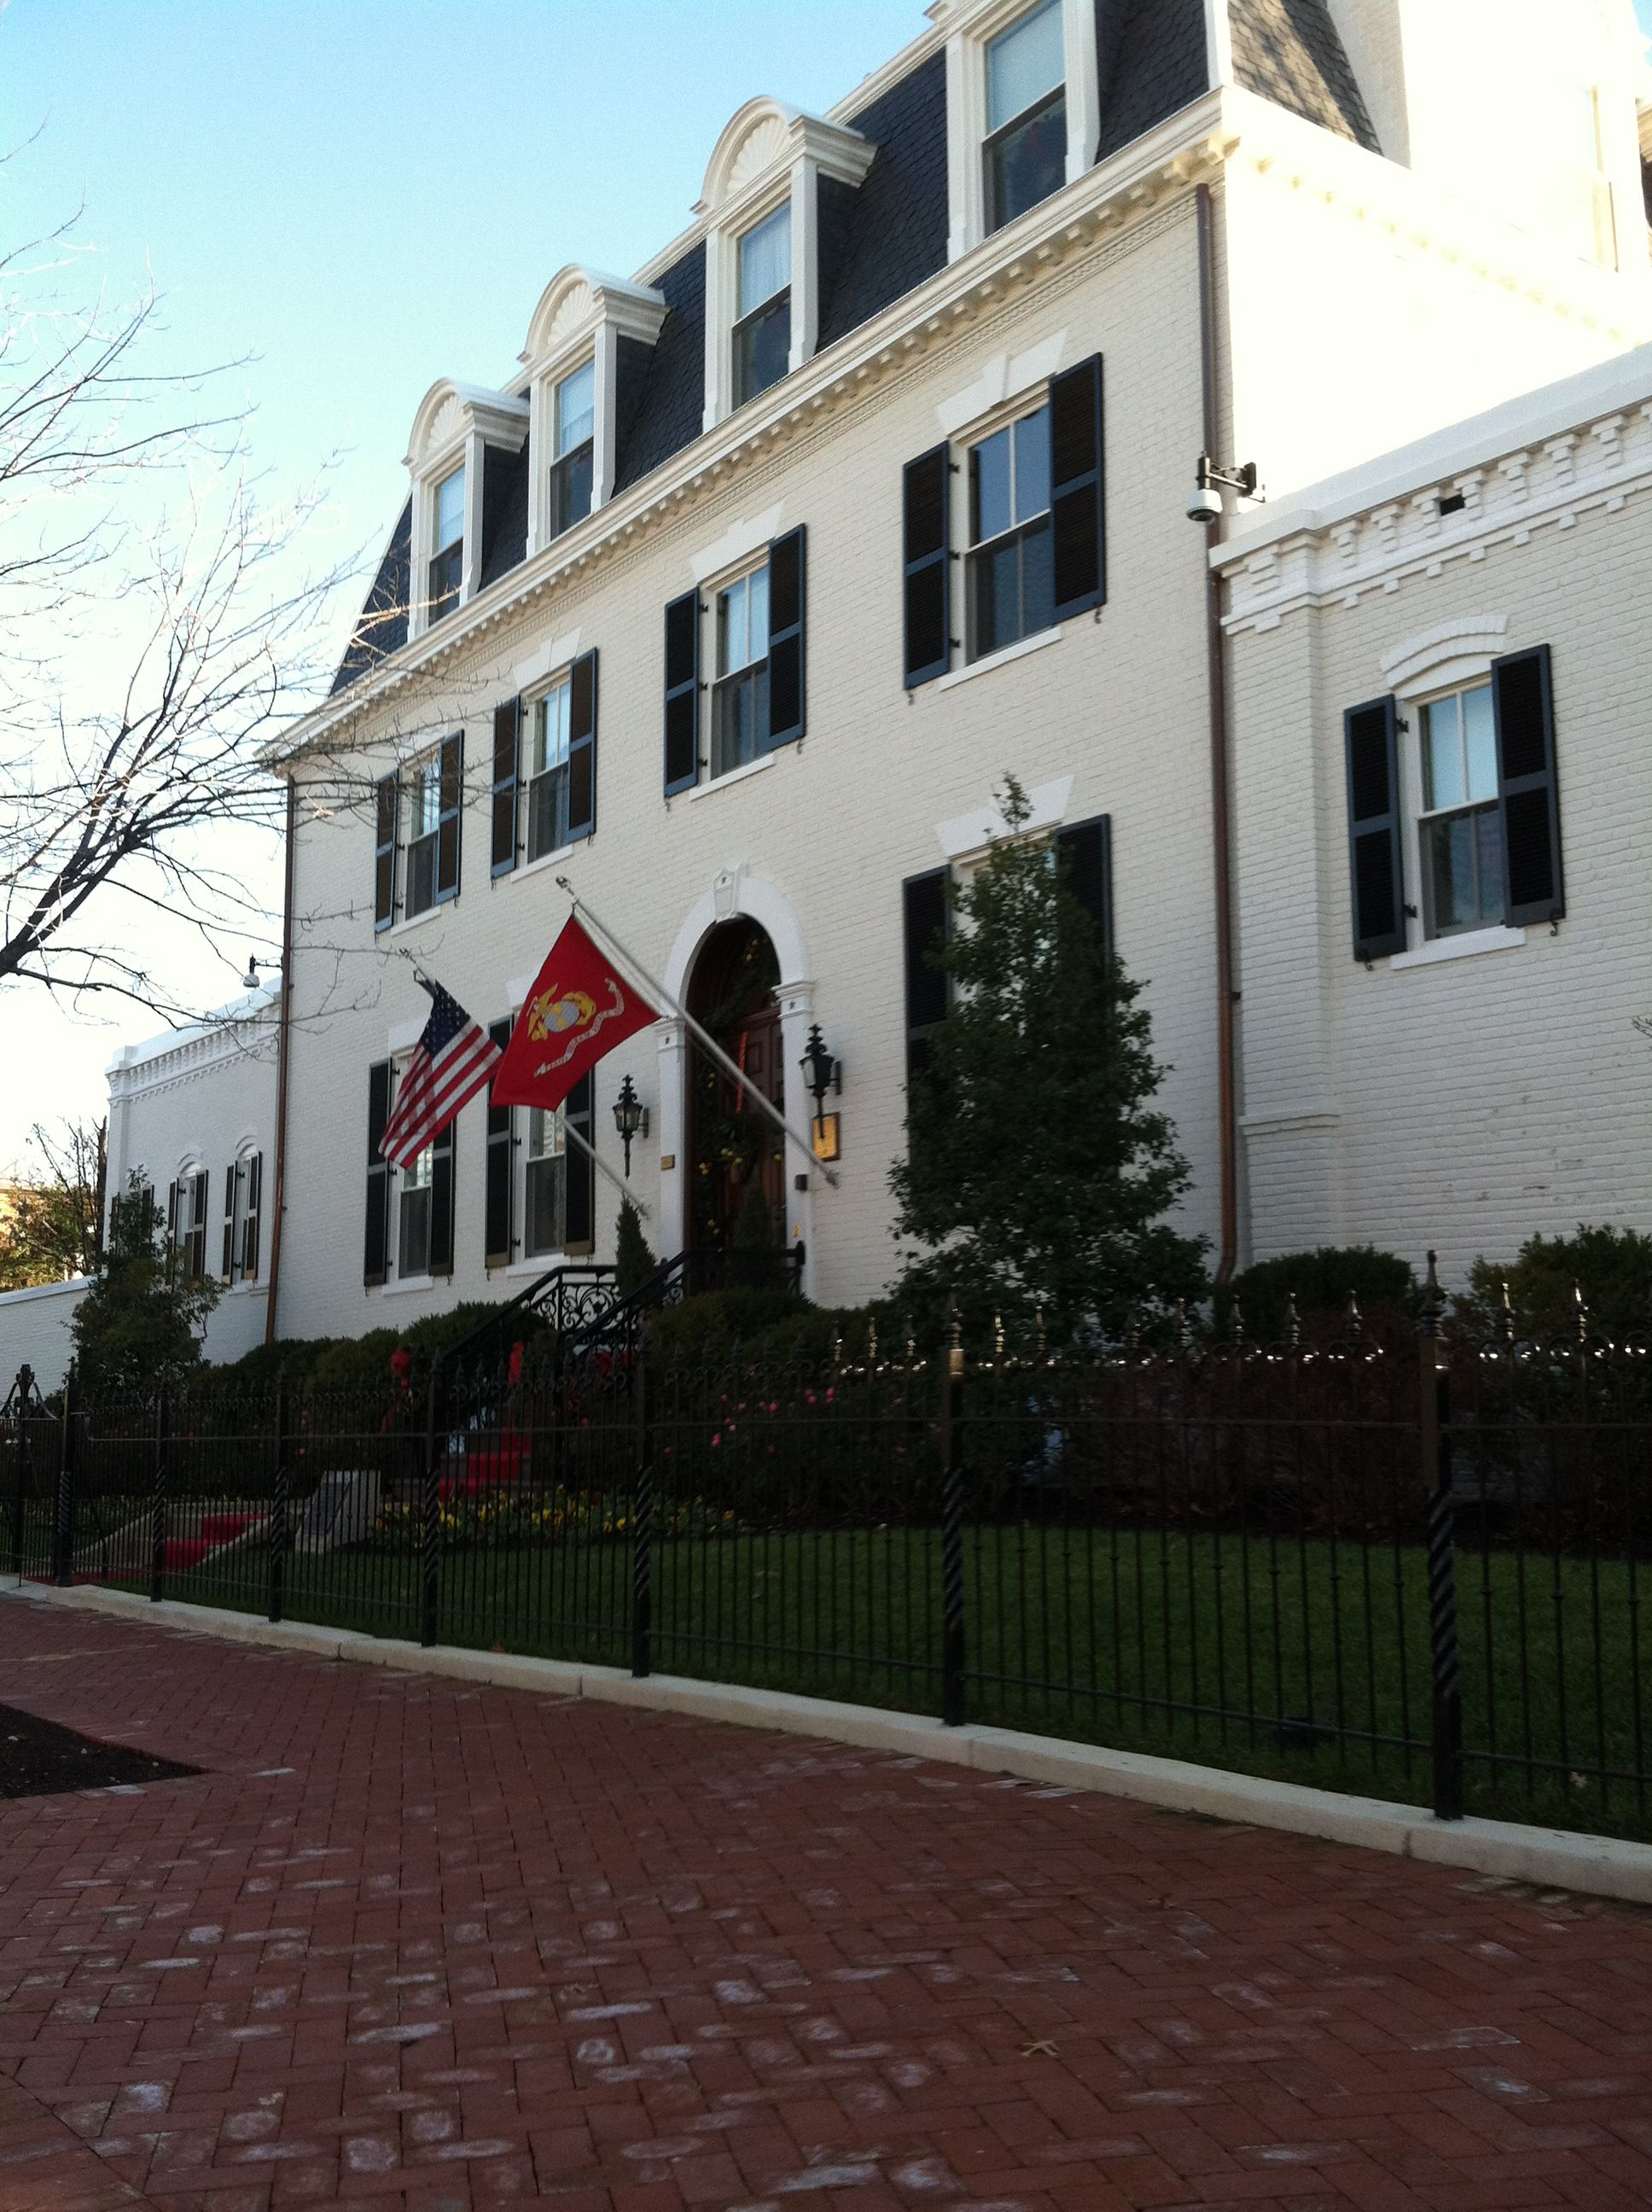 Marine corps barracks